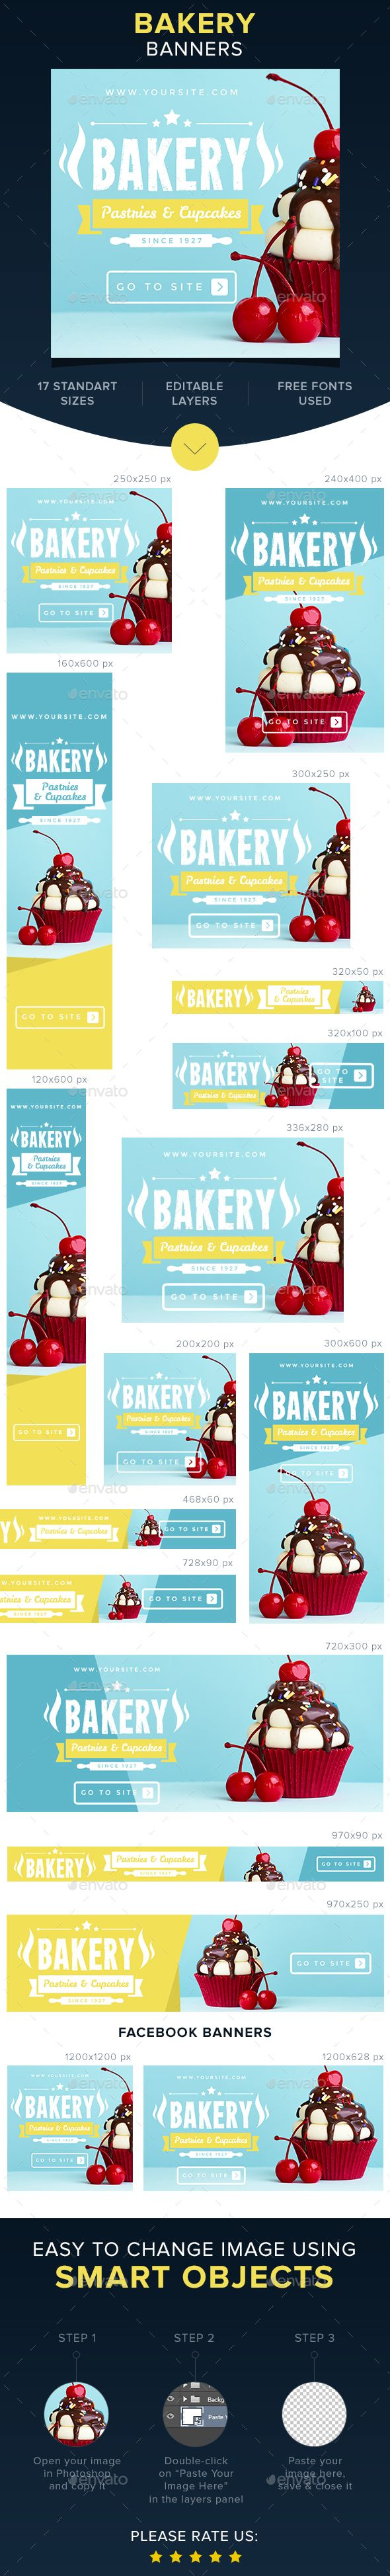 Banner Design Ideas excellent postcard design by our expert designers at a minimum rate visit us Bakery Banners